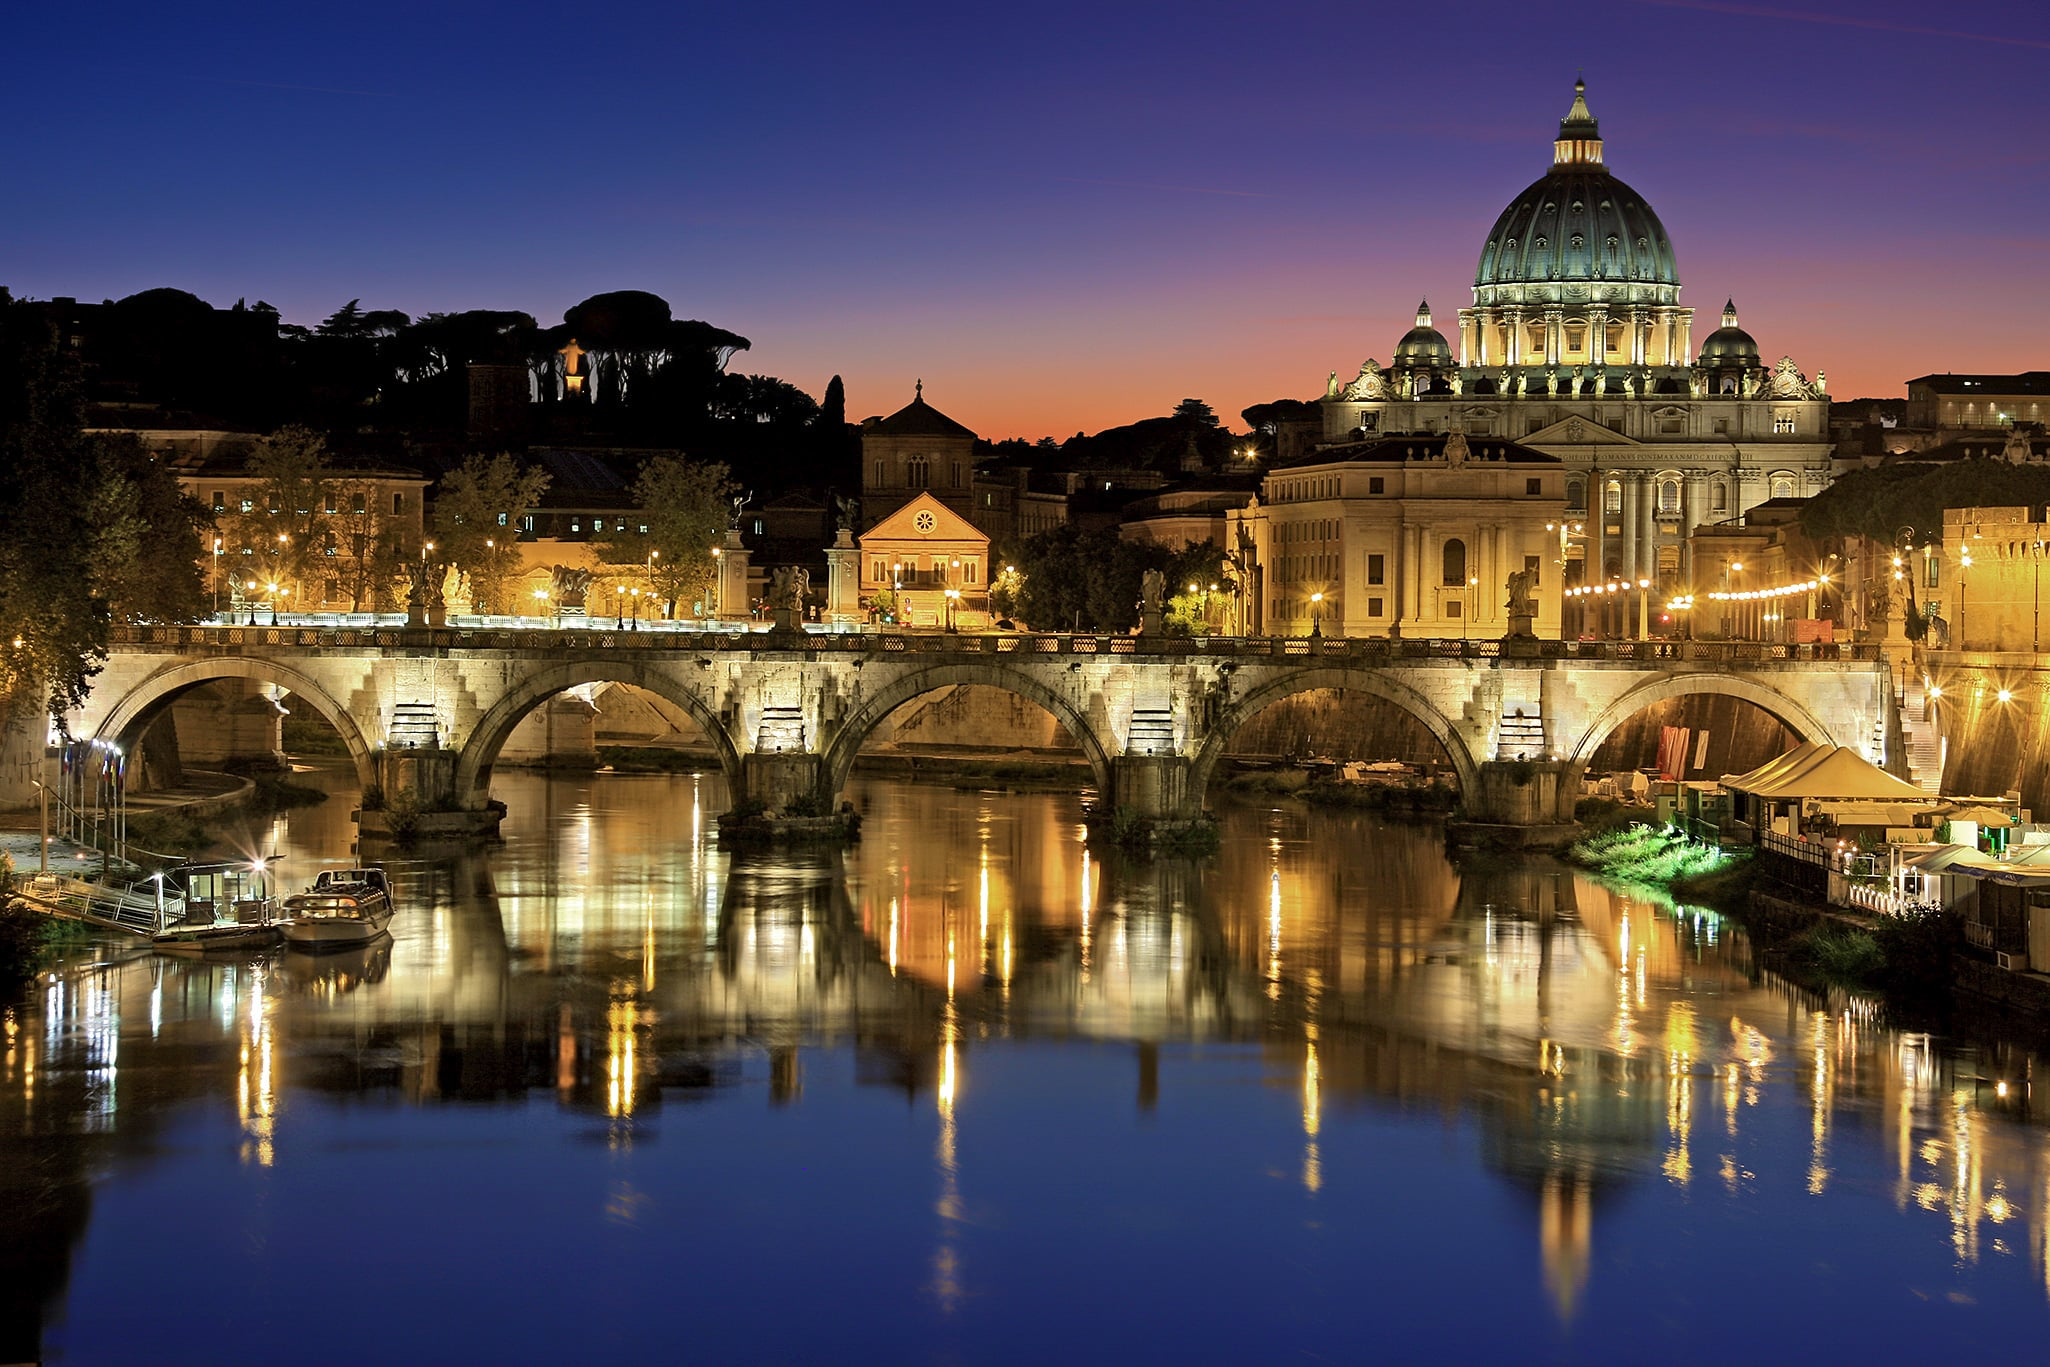 Rome Incentive Travel: Bucket List Trip to the Eternal City